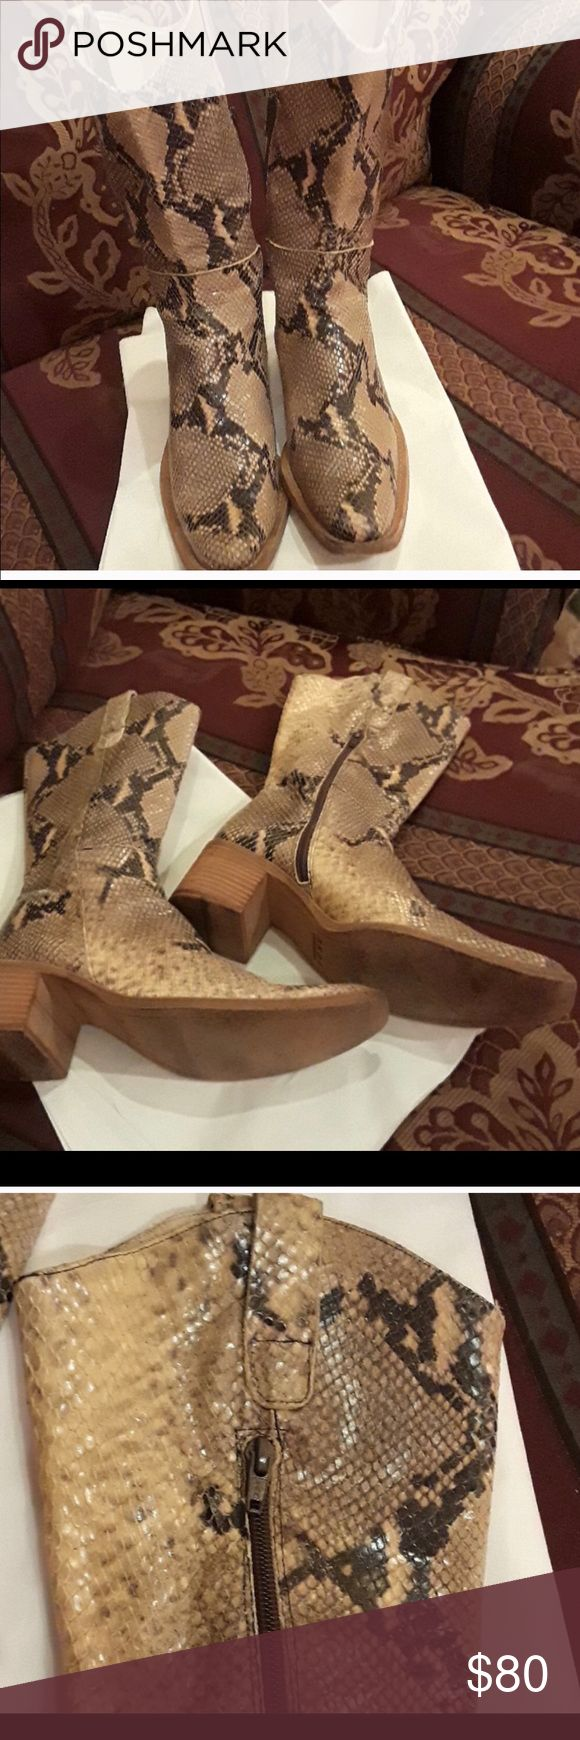 Hype python print leather cowboy boots Made in Spain. Great condition! Hype Shoes Heeled Boots